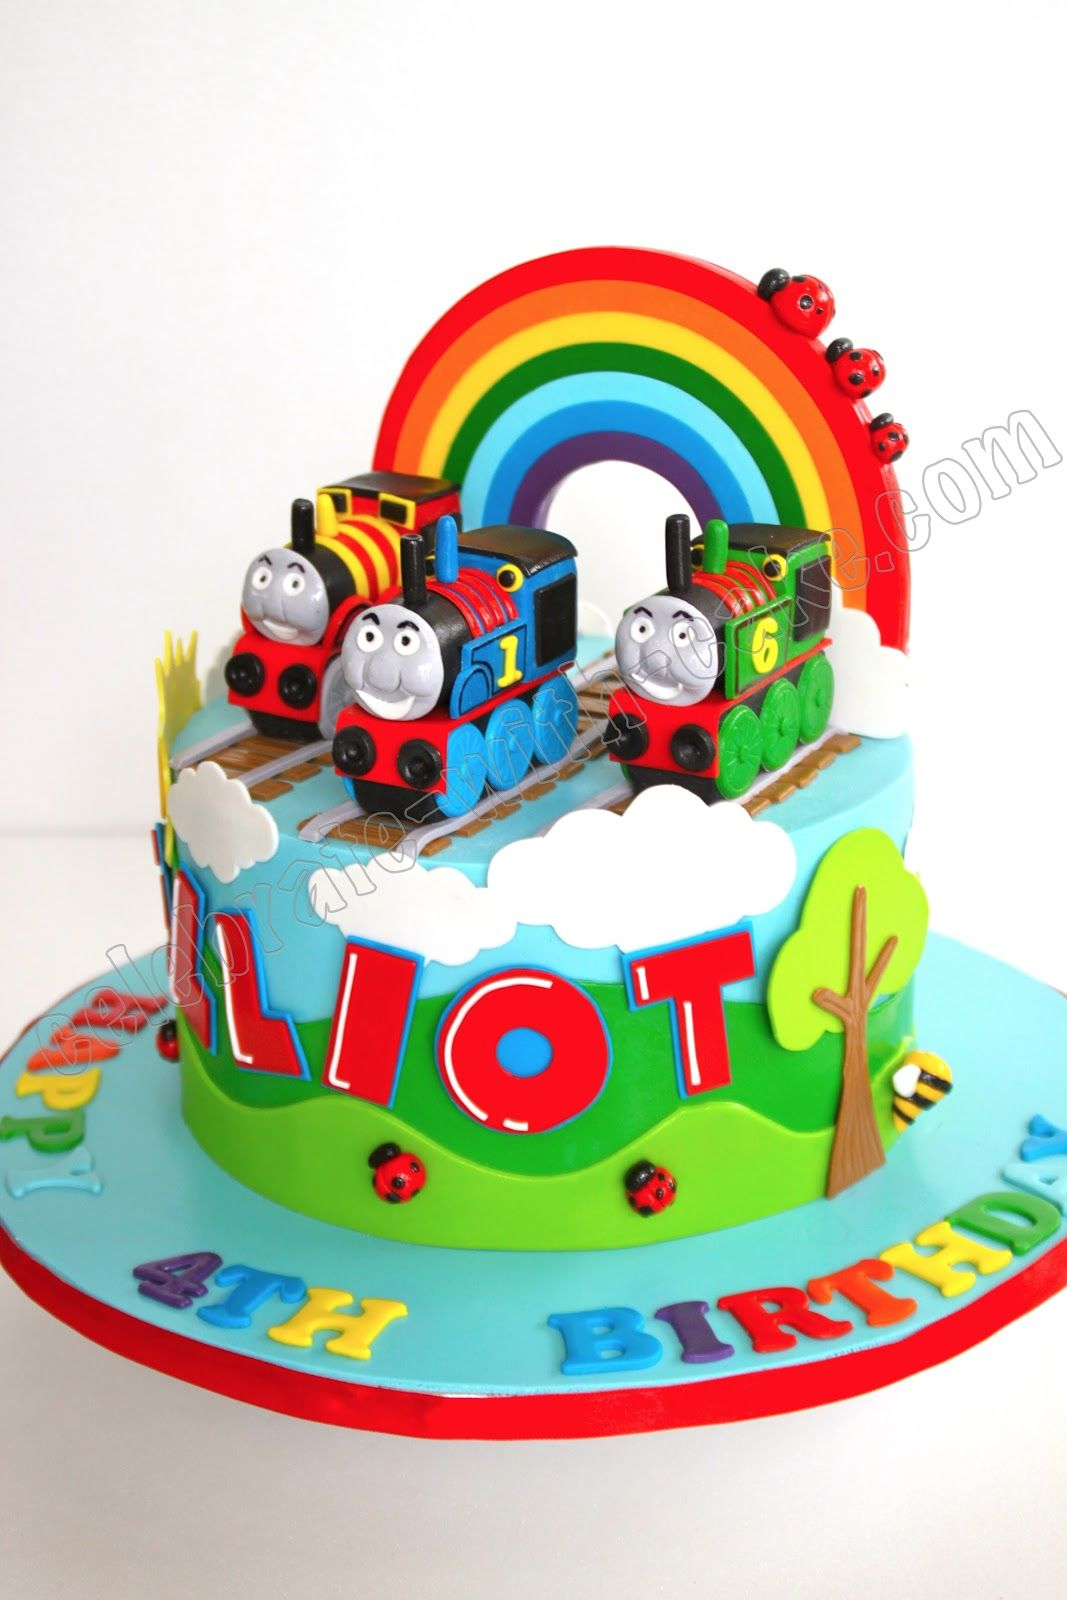 Celebrate With Cake Thomas The Tank Engine